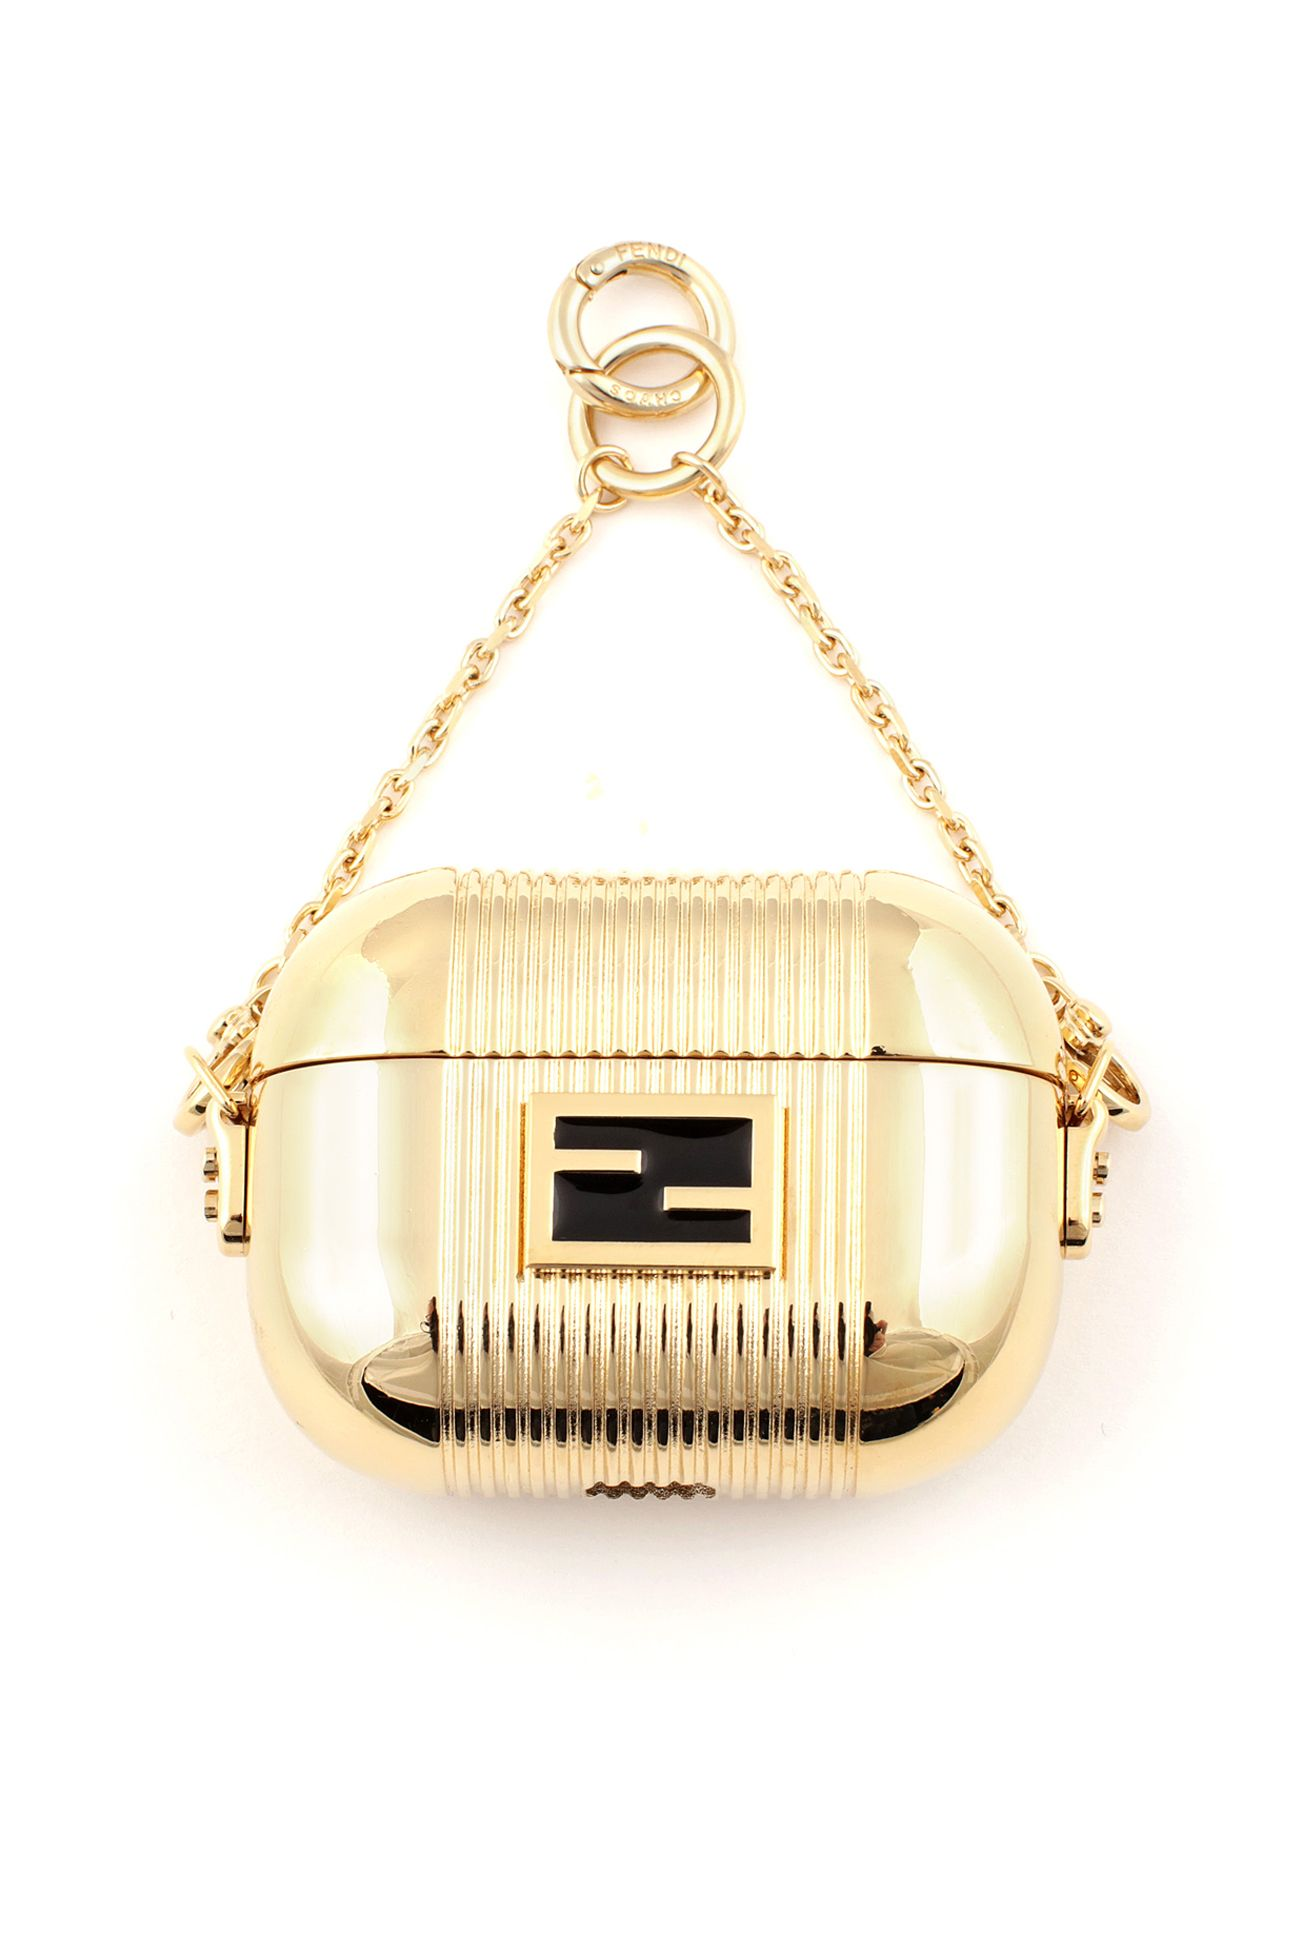 61 Best Luxury Gifts For Women Expensive And Designer Gift Ideas